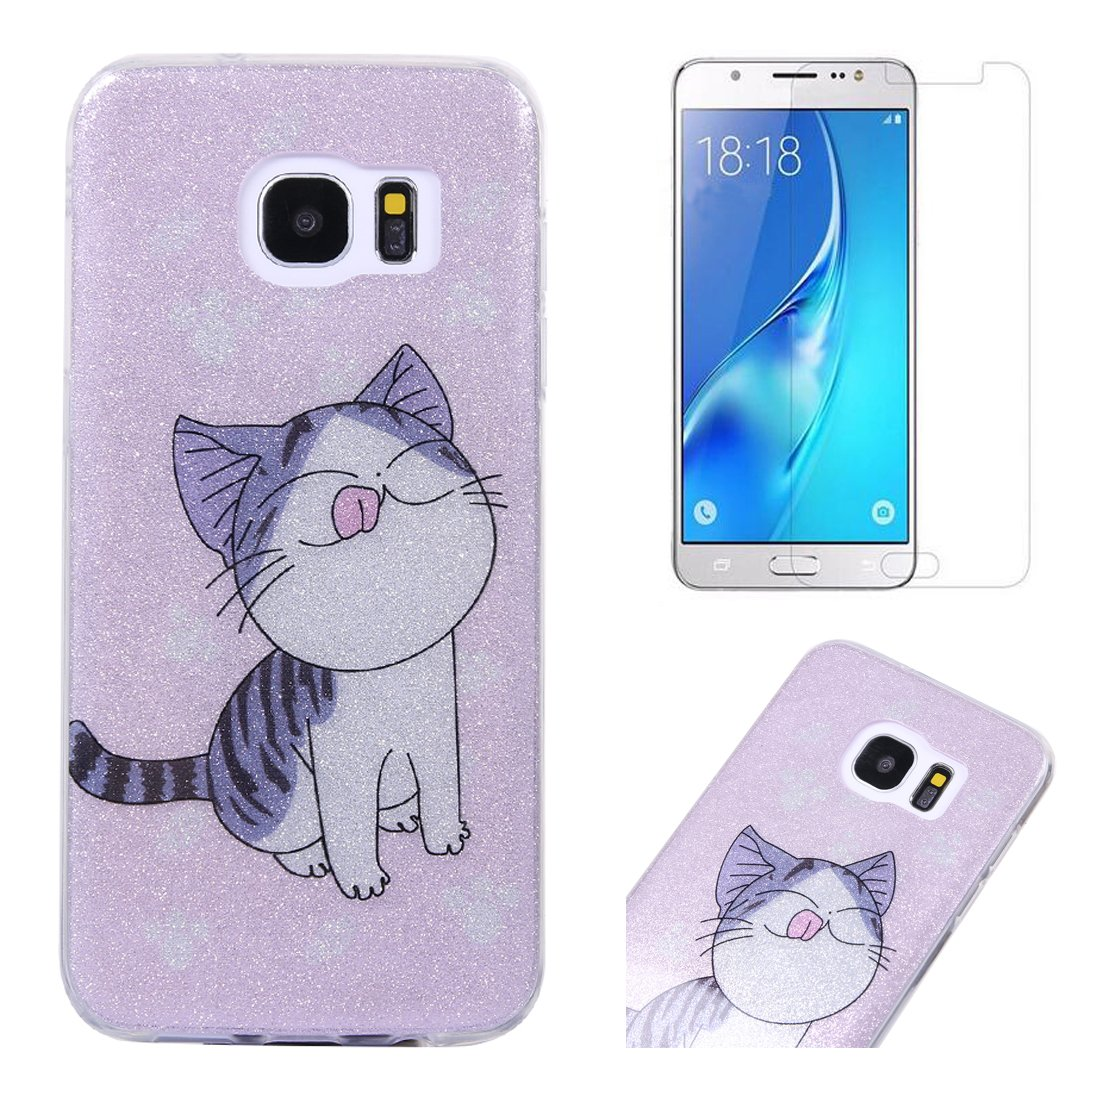 For Samsung Galaxy S6 Case with Pattern Purple Pineapple, OYIME Glitter Bling Design Ultra Thin Slim Fit Protective Back Cover Soft Silicone Rubber Shell Drop Protection Anti-Scratch Transparent Bumper and Screen Protector